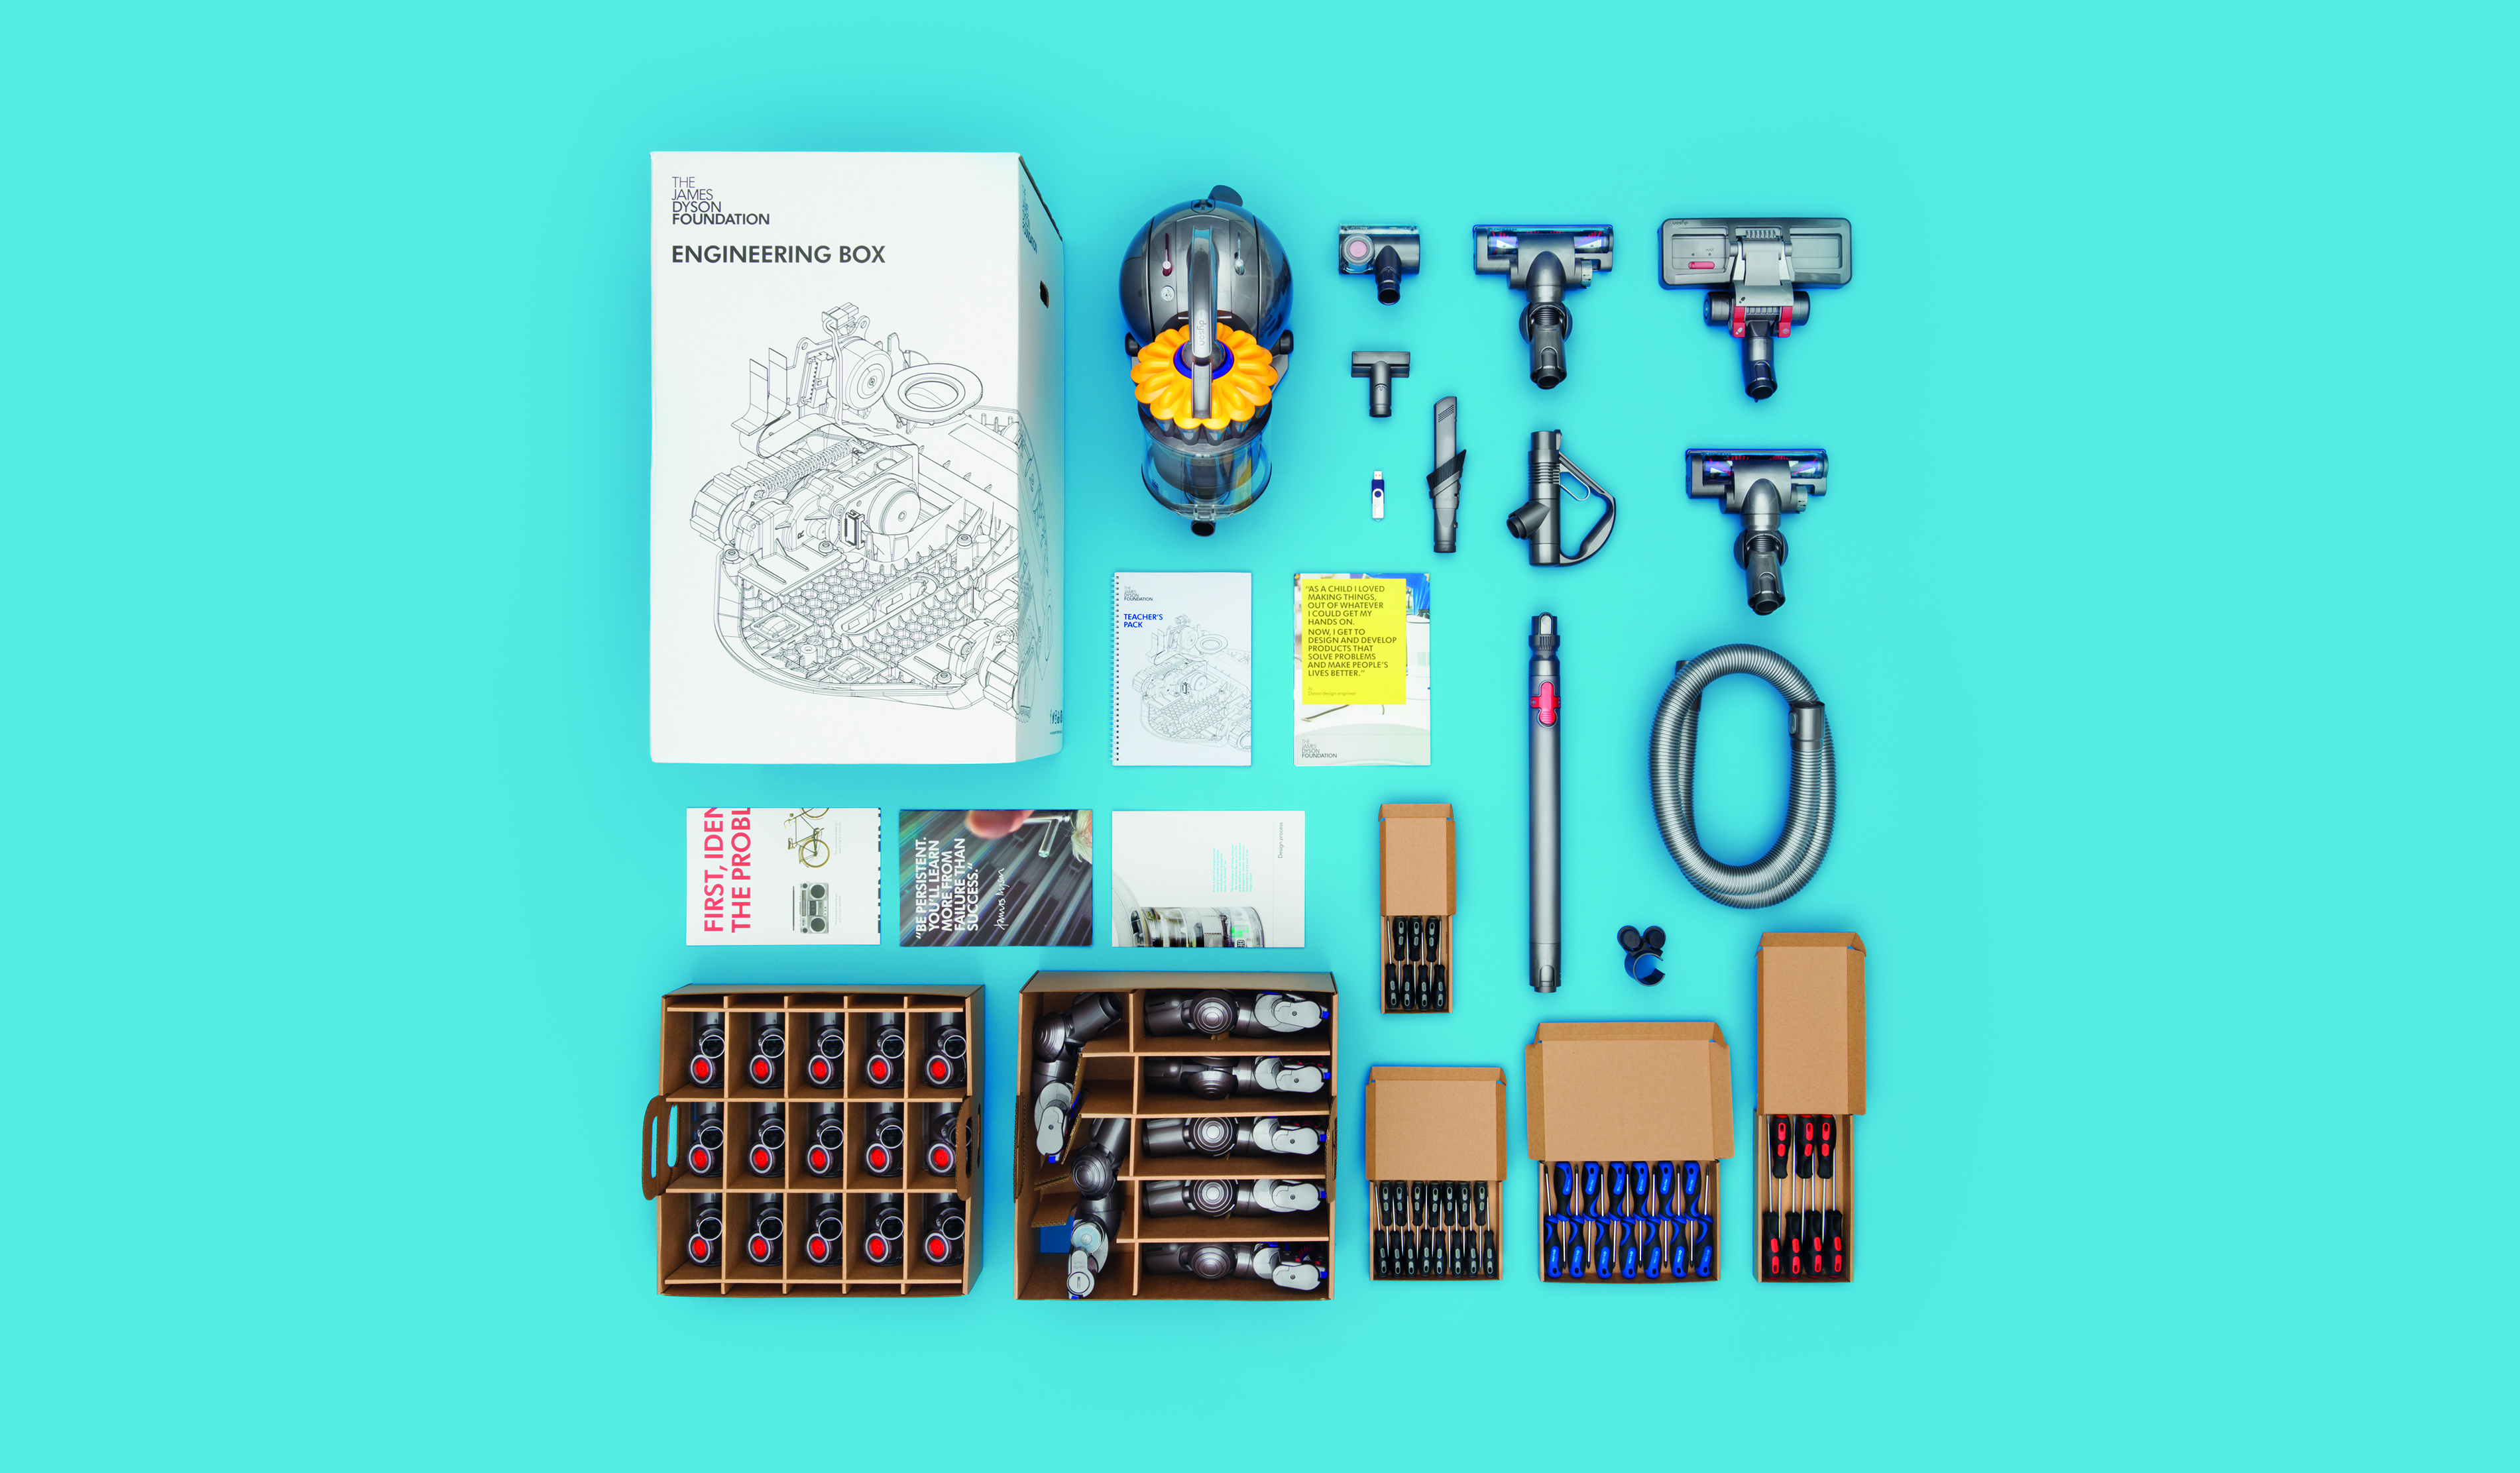 The engineering box and its contents. Including a Dyson vacuum cleaner and a teacher's information pack.